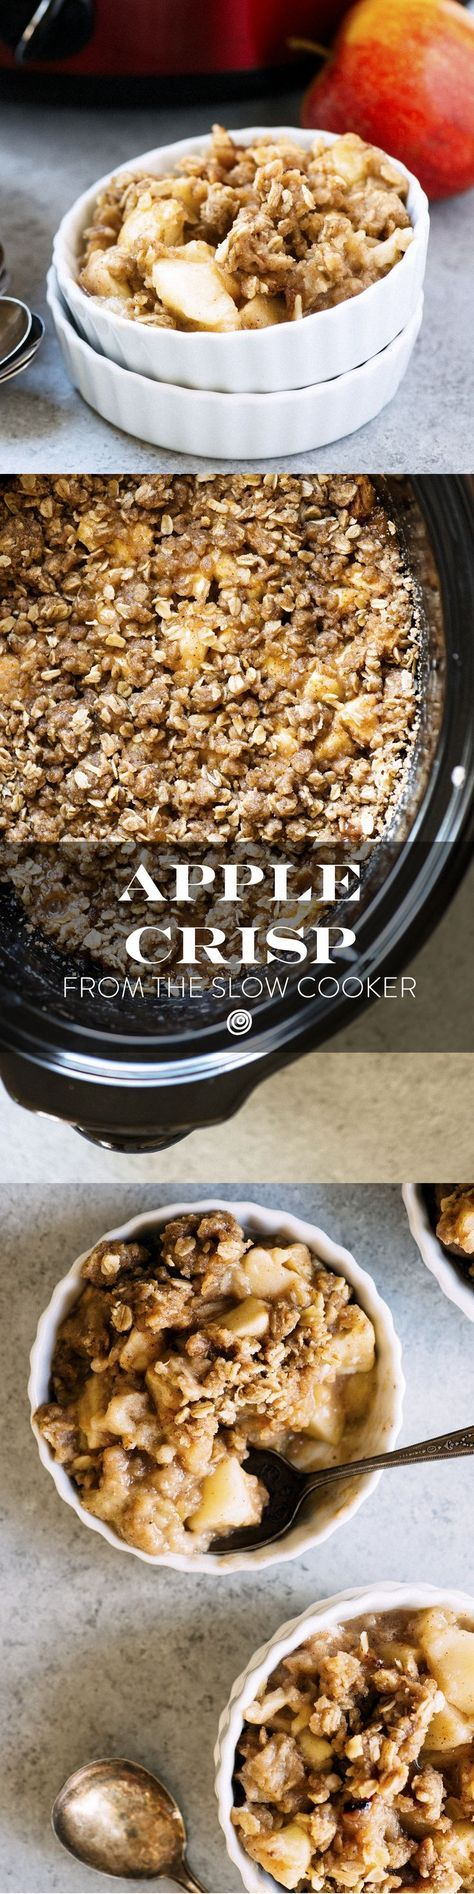 Slow Cooker Apple Crisp Recipe. Crock pots fanatics, listen up! This easy and quick dessert is the king of all fall recipes. Go apple picking, then add this to your list of must-make desserts